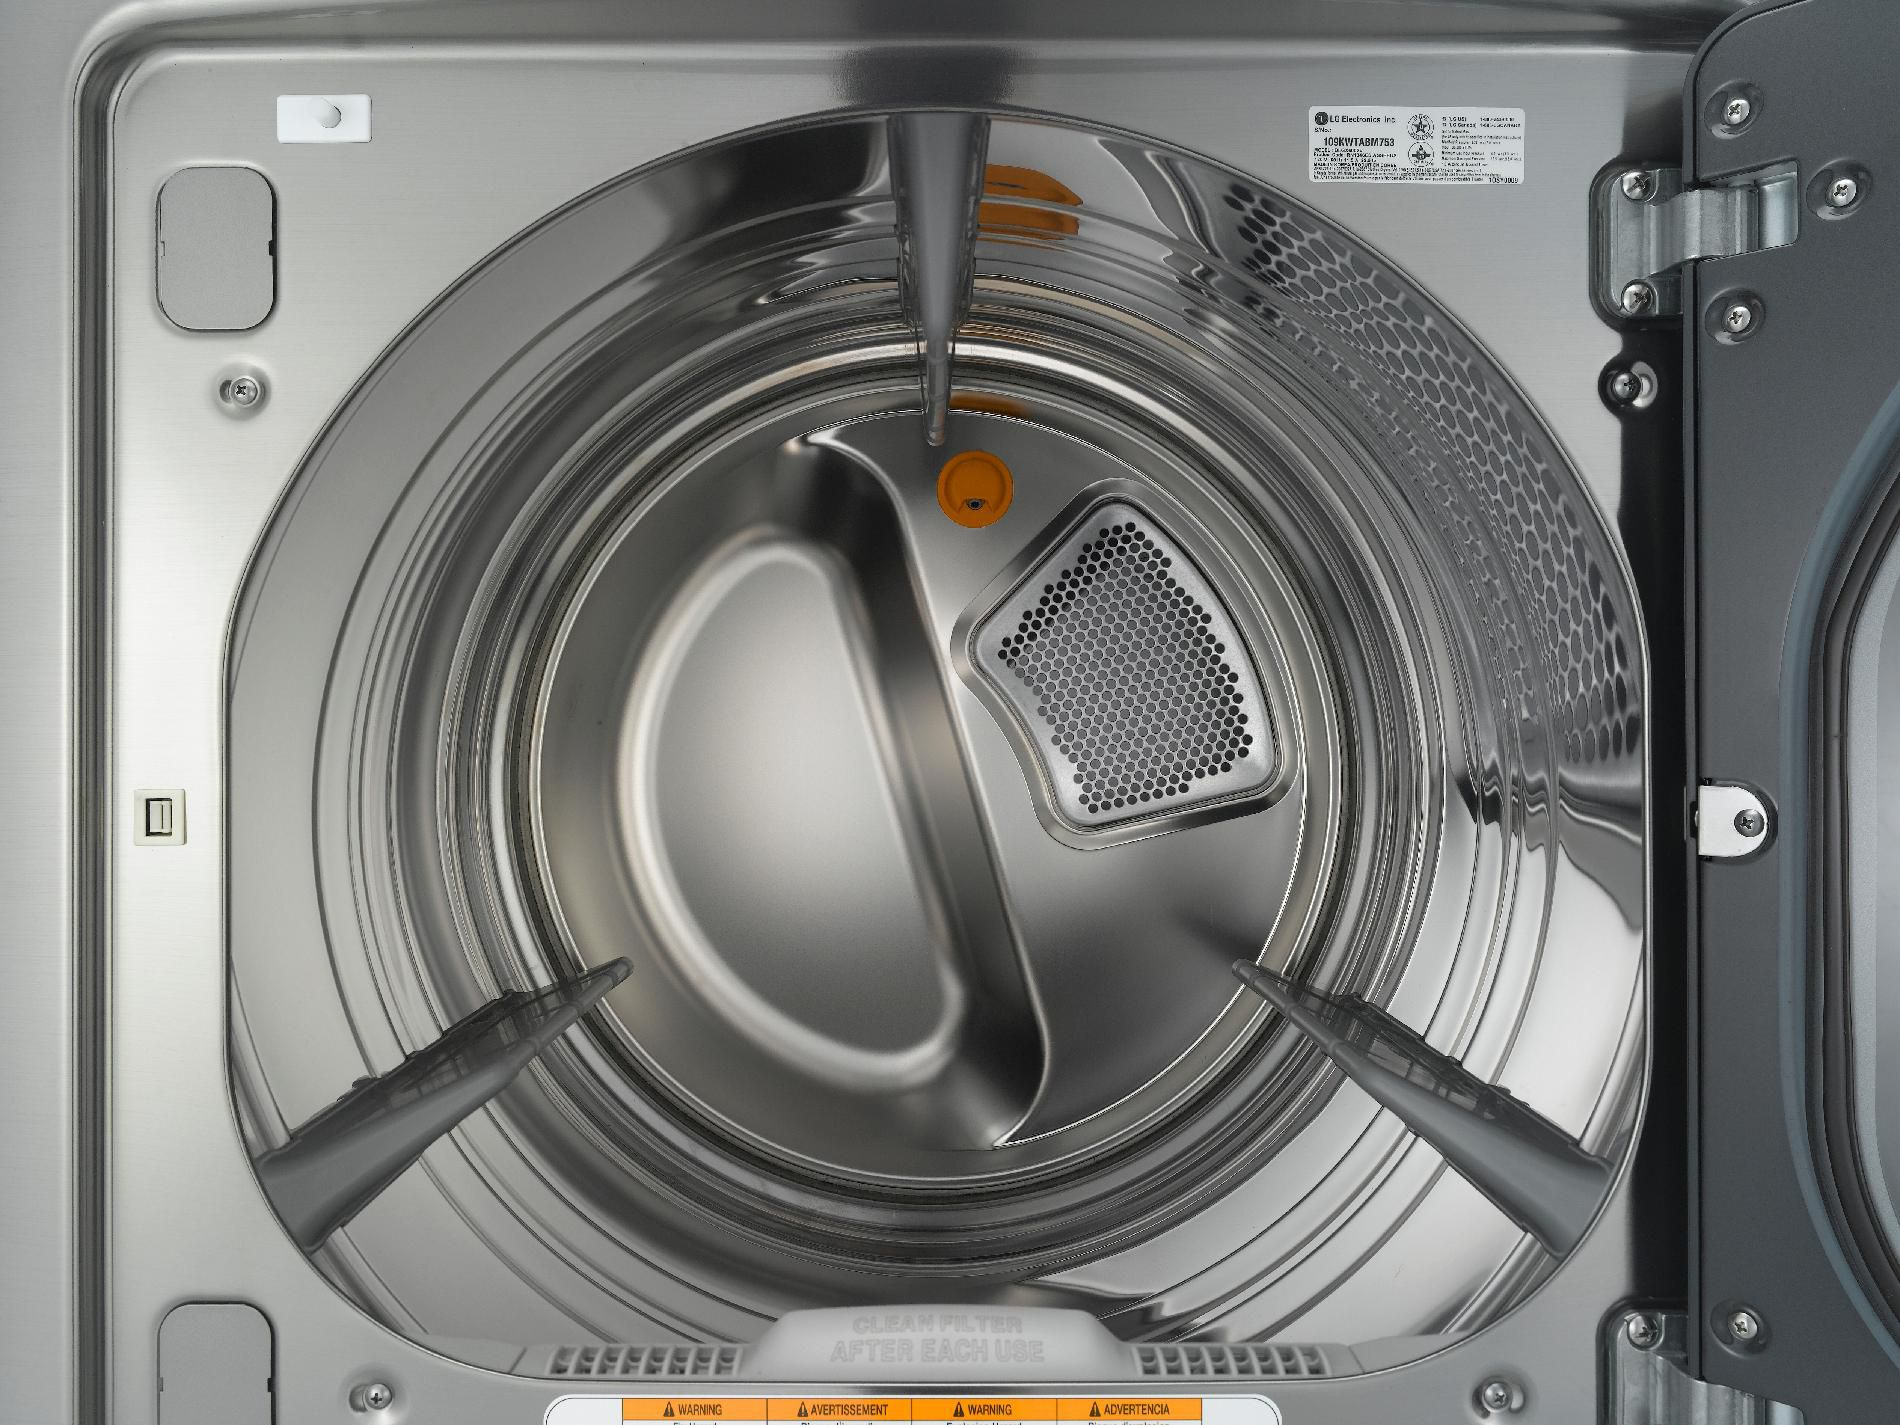 LG 7.3 cu. ft. Steam Electric Dryer with Smart Thinq™ Technology - Graphite Steel